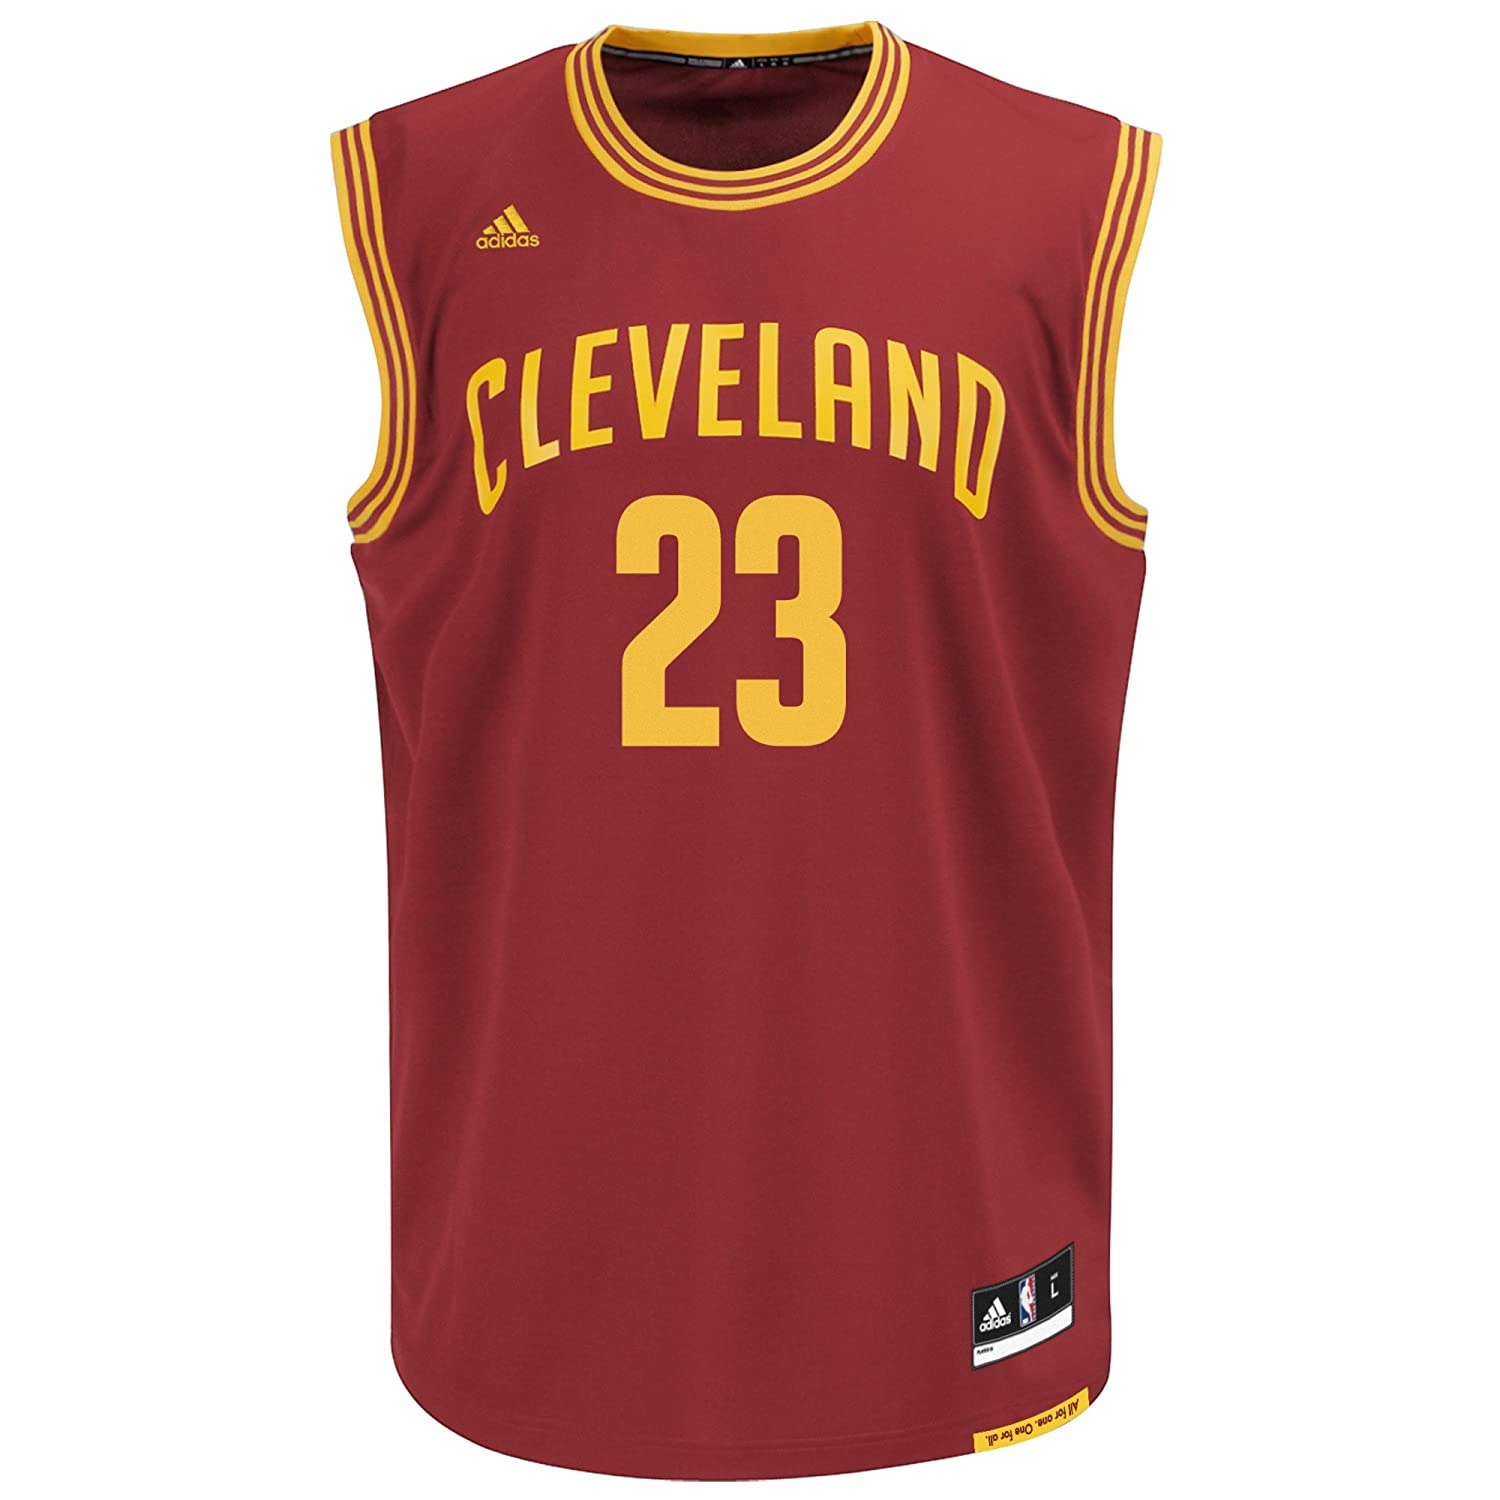 24a9fed20d3 ... NBA Cleveland Cavaliers LeBron James 23 Mens Replica Jersey  Amazon.co.uk Sports Outdoors ...